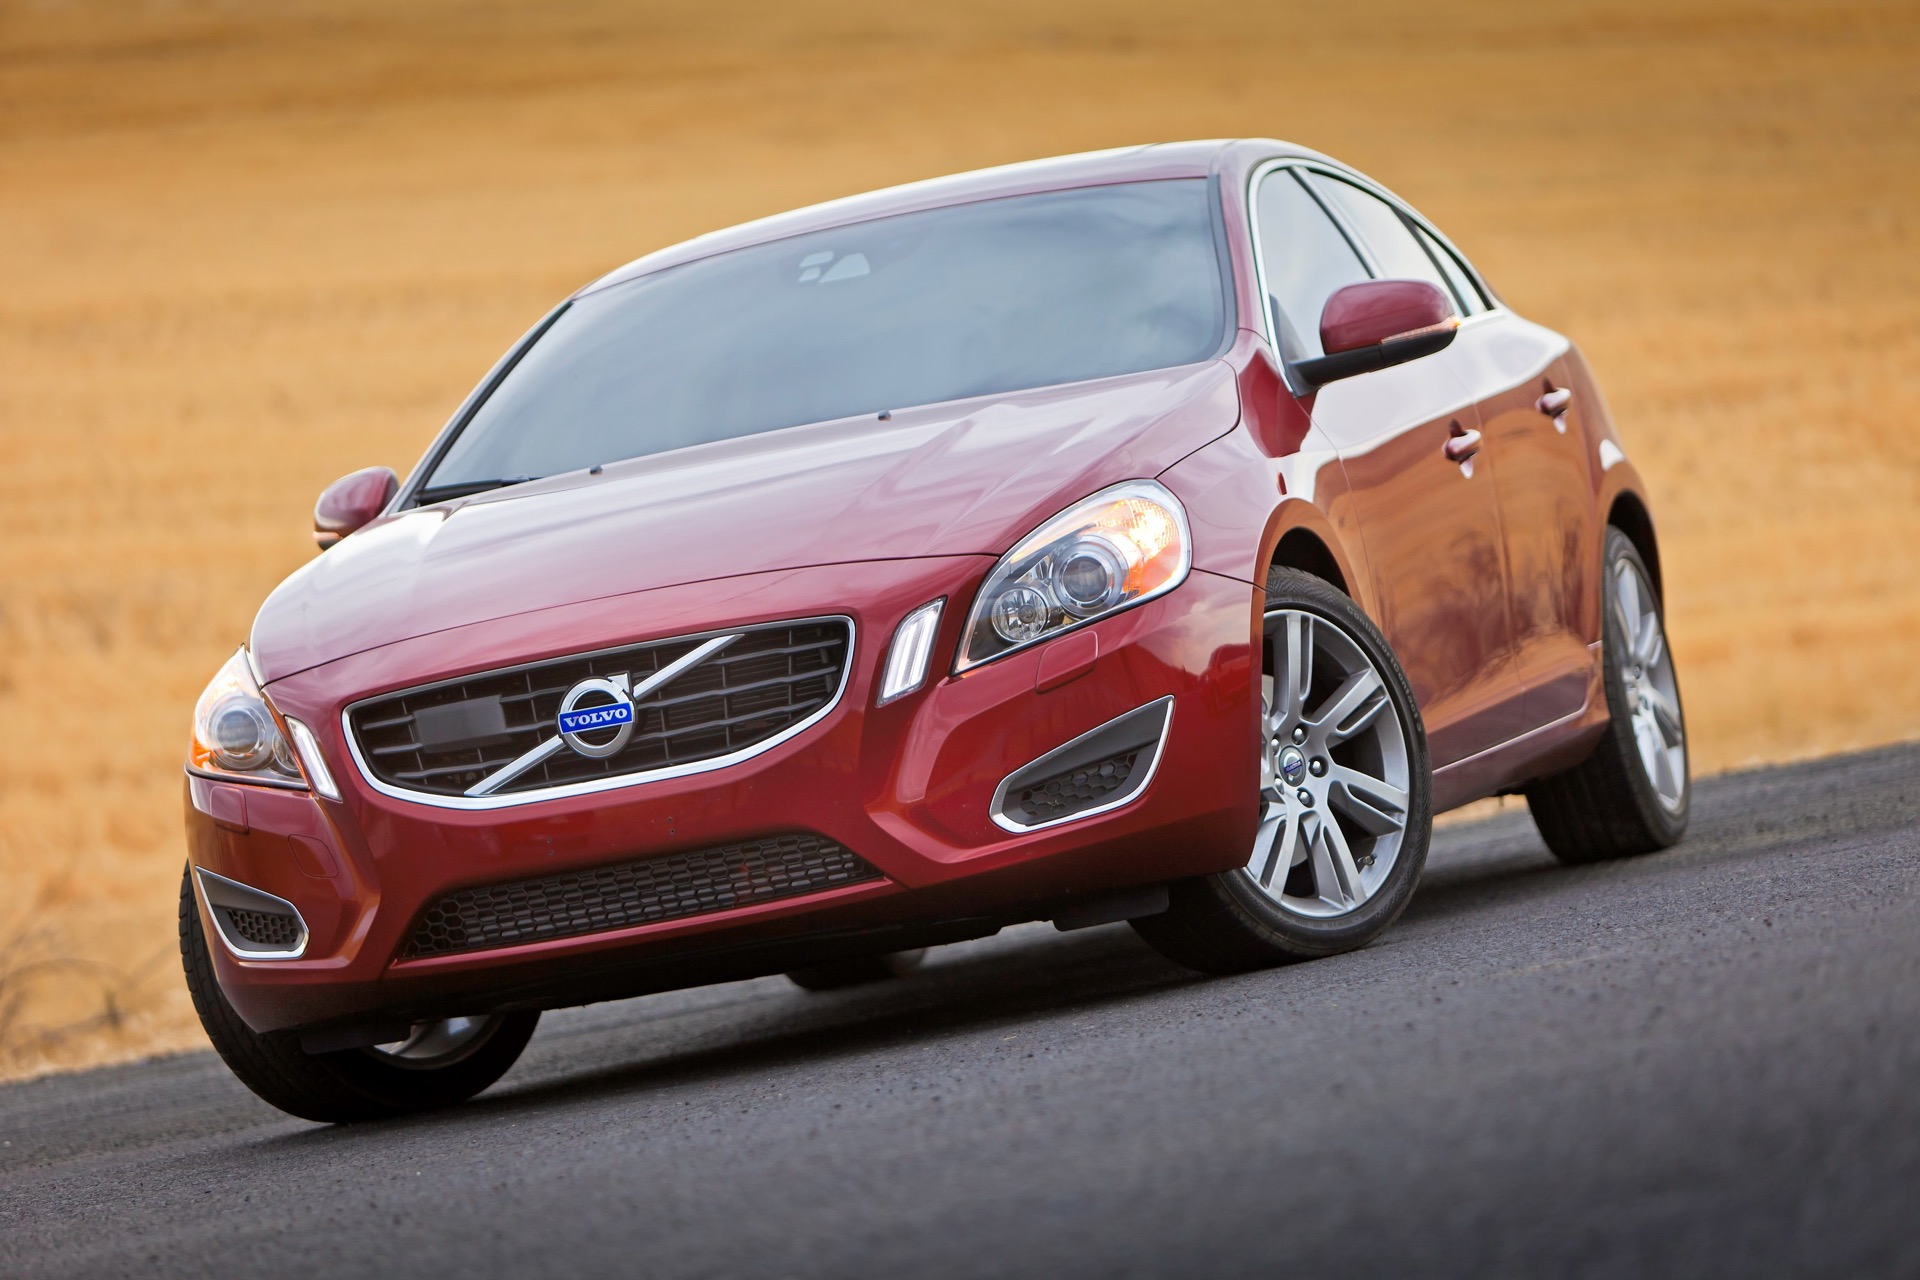 S60 T6 Awd Static Beauty08 -  Volvo